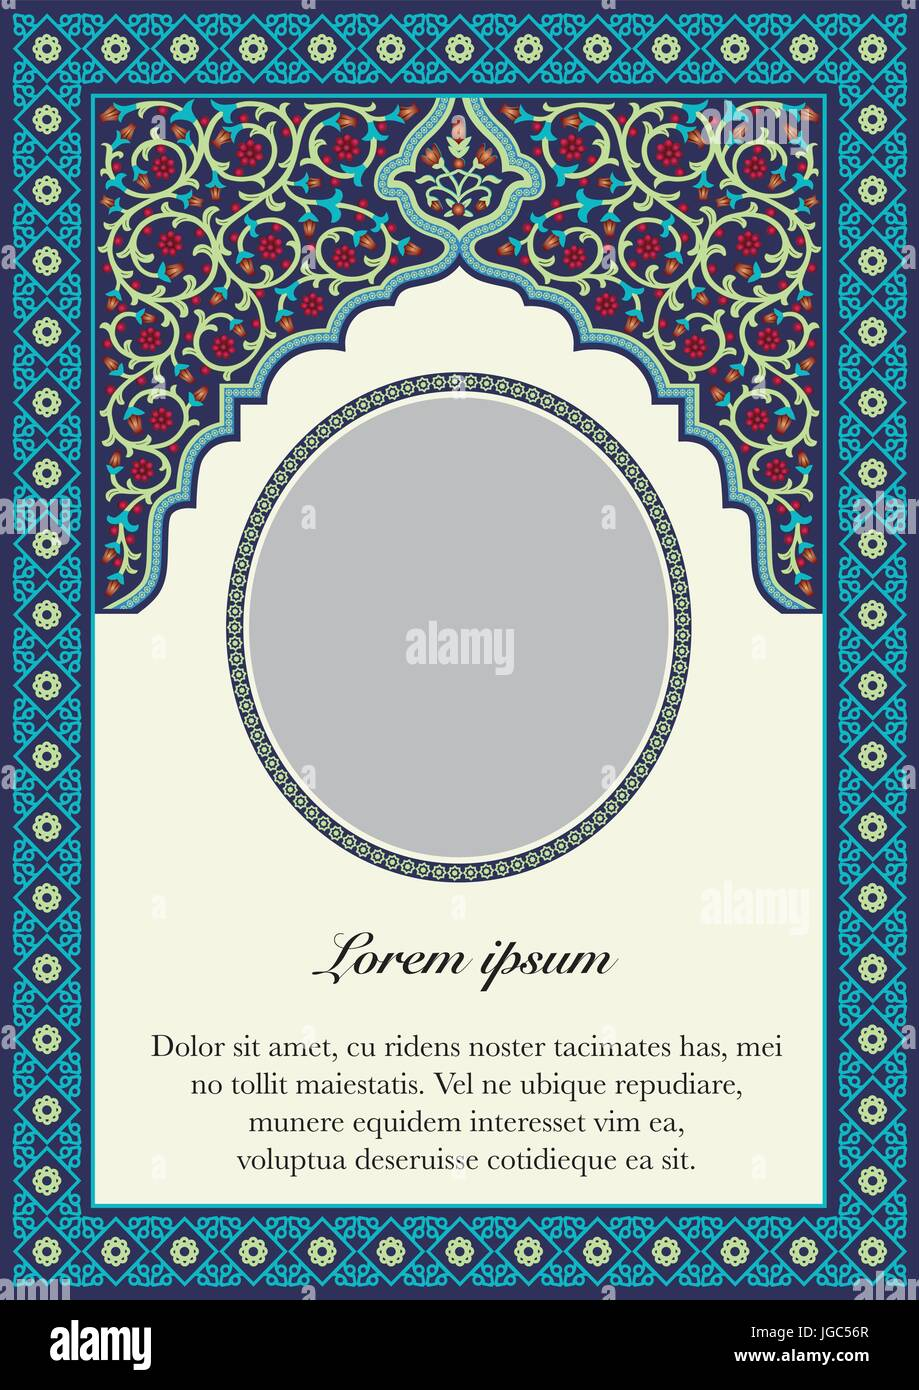 Book Cover Art Styles : Inside book cover islamic style stock vector art